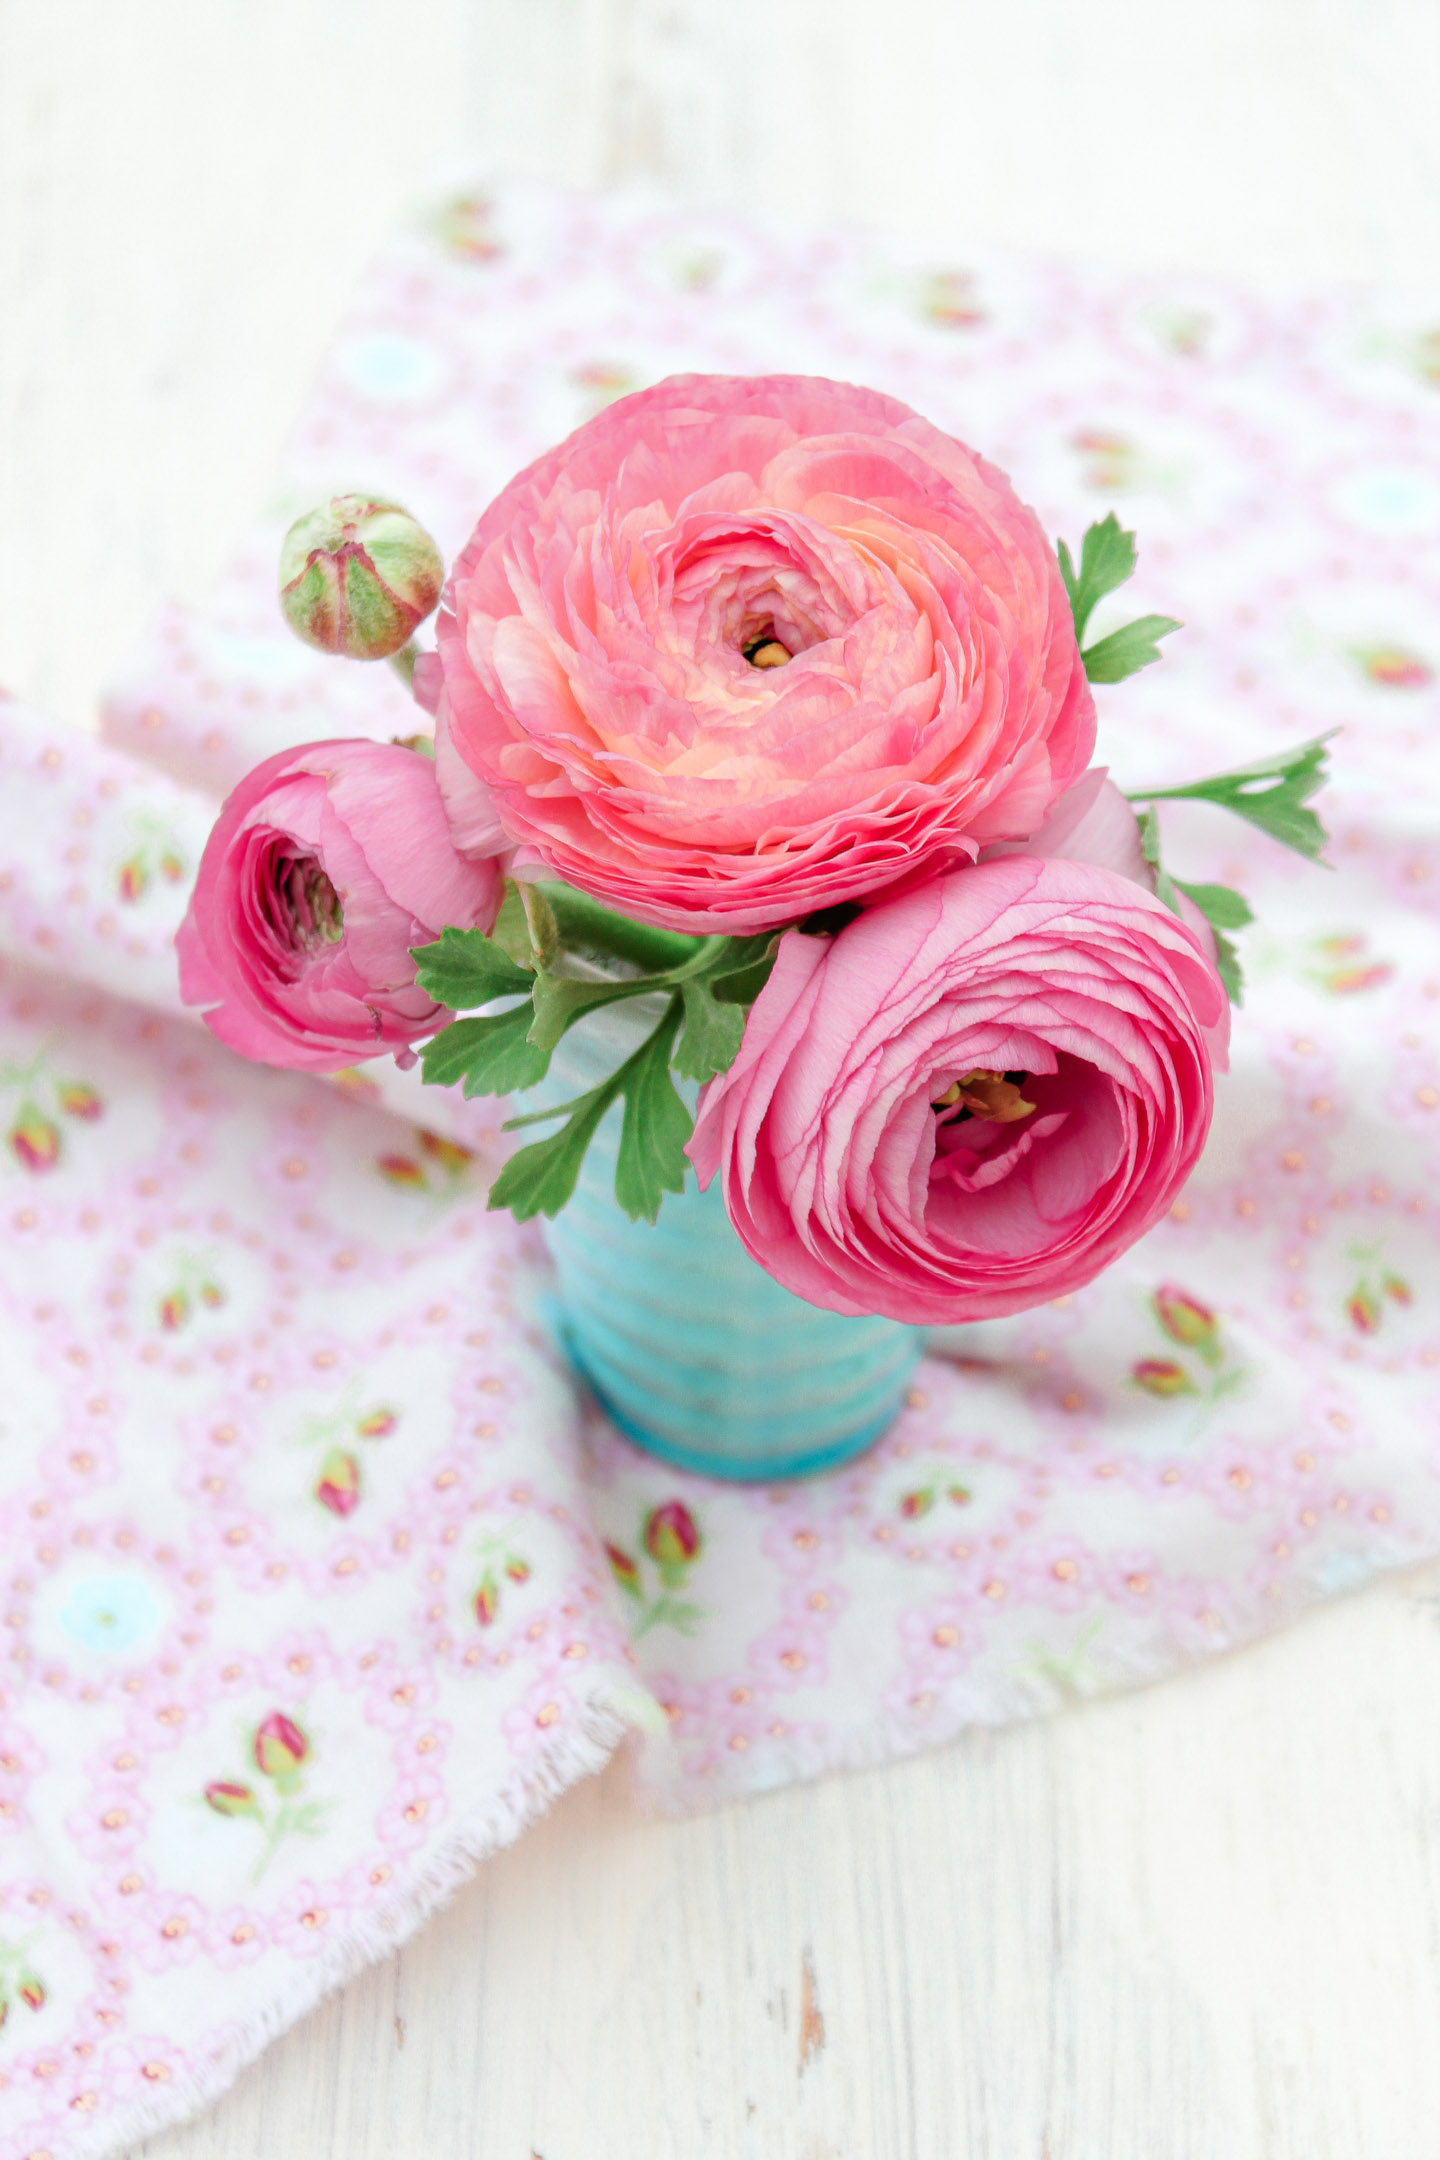 Pink ranunculus in a turquoise vase.